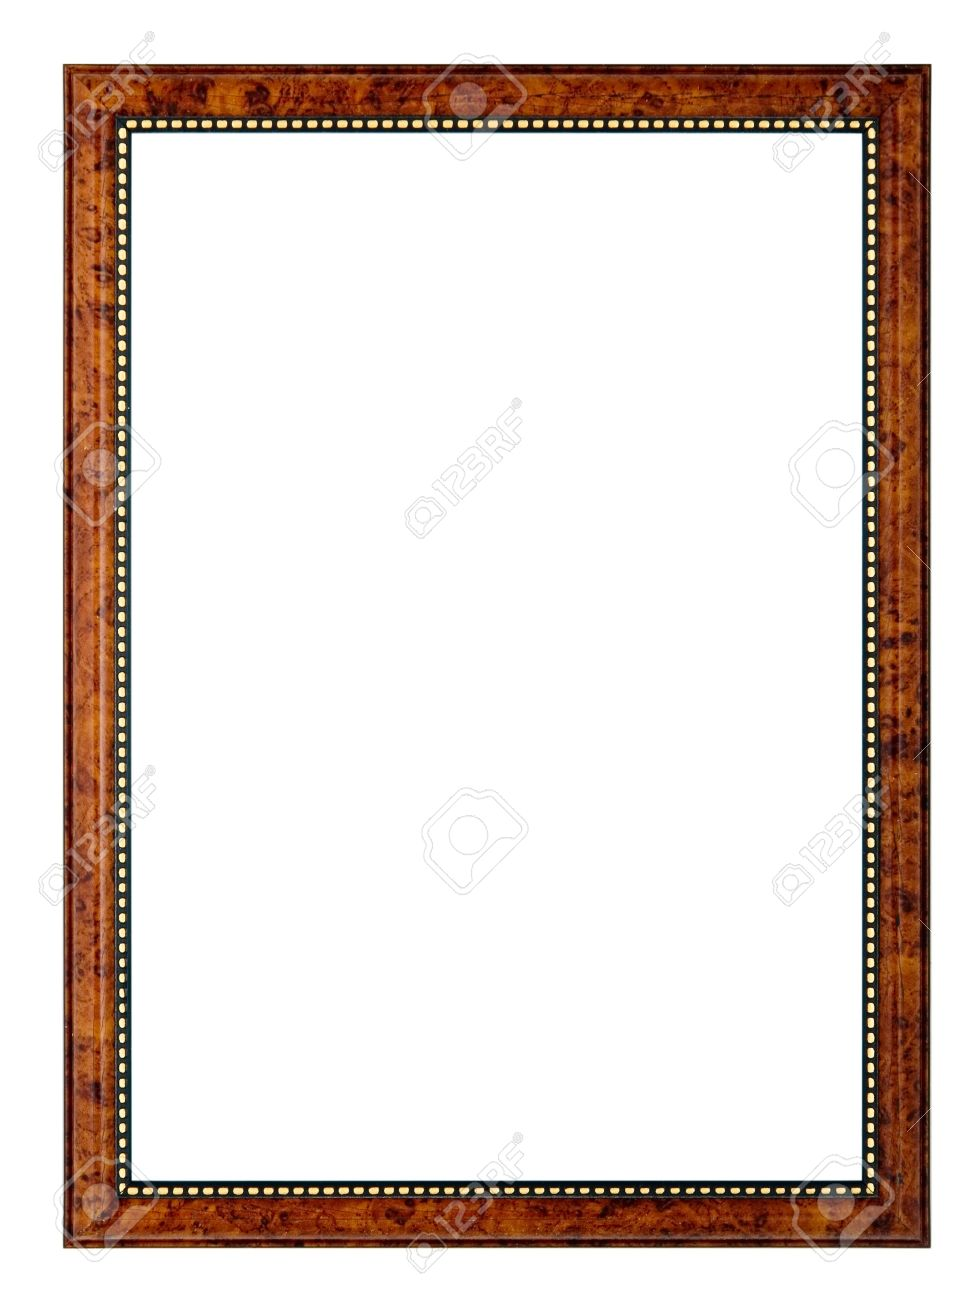 An Empty Frame, Isolated On White Stock Photo, Picture And Royalty ...